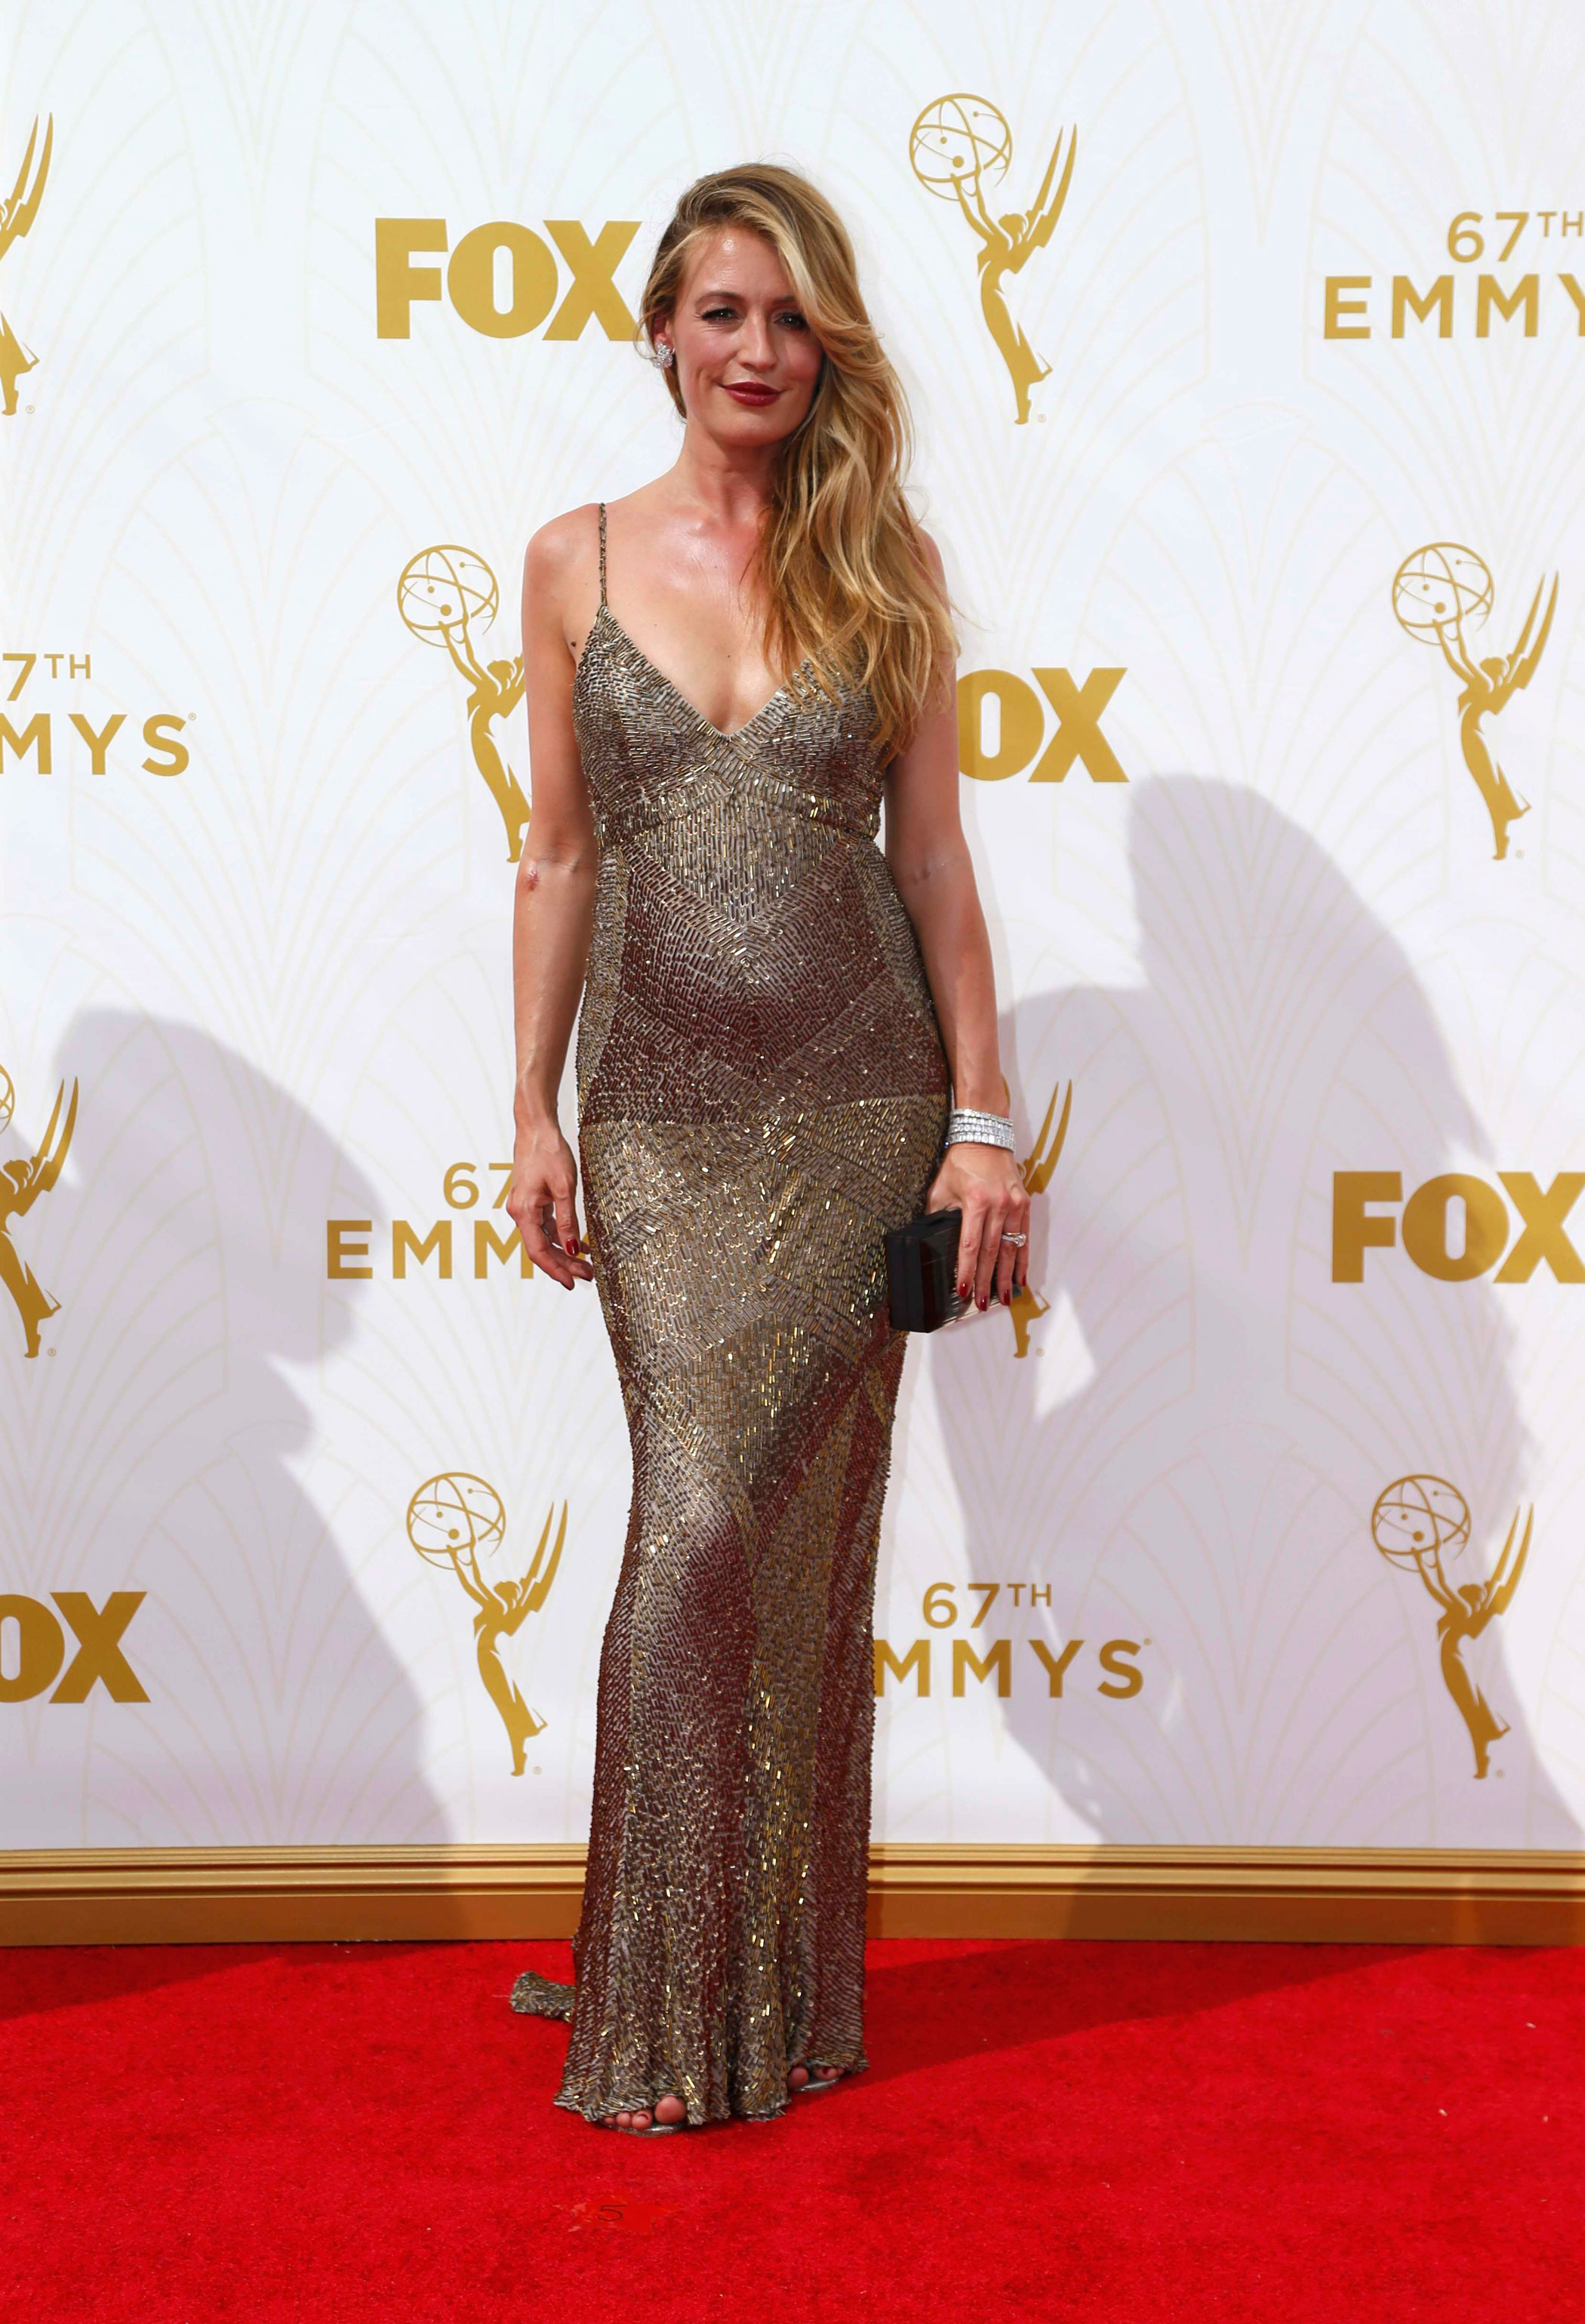 Kat Deeley at the 67th Emmy Award on Sept. 20, 2015 in Los Angeles.